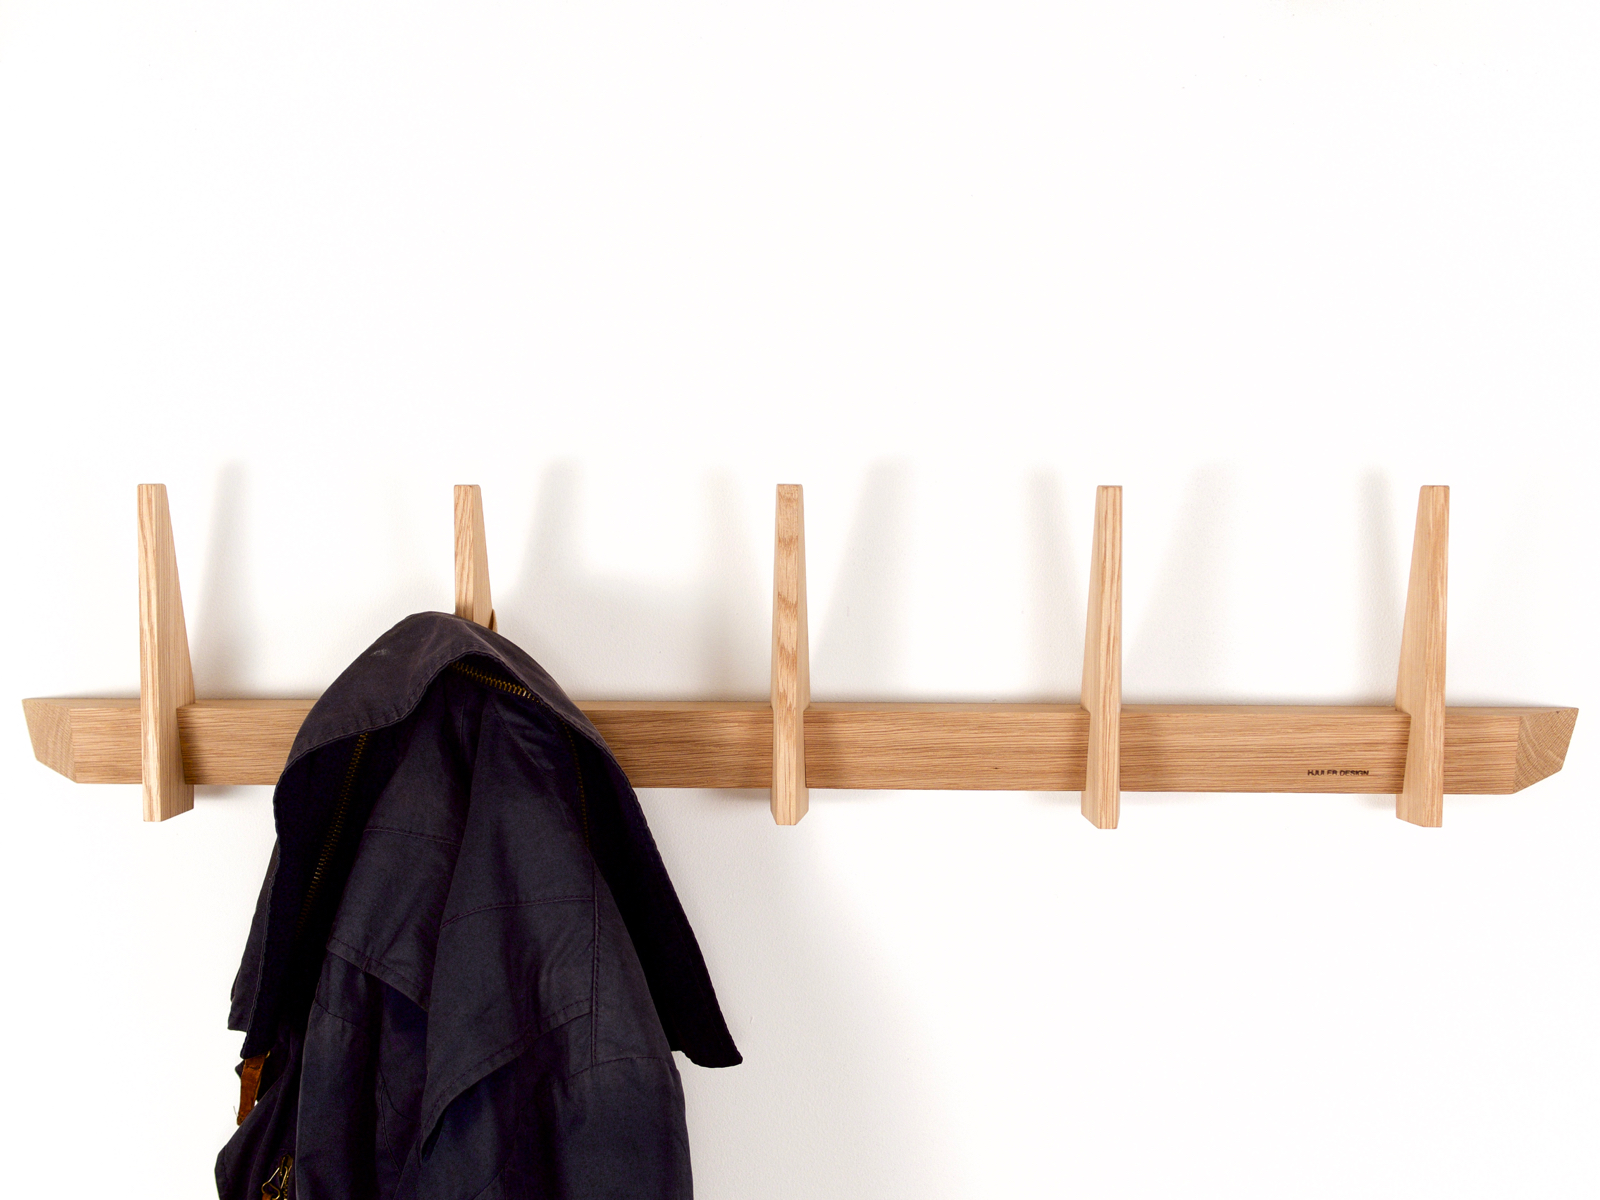 Simple coat racks made in oak wood from Hjuler.Design Danish modern scandinavian design